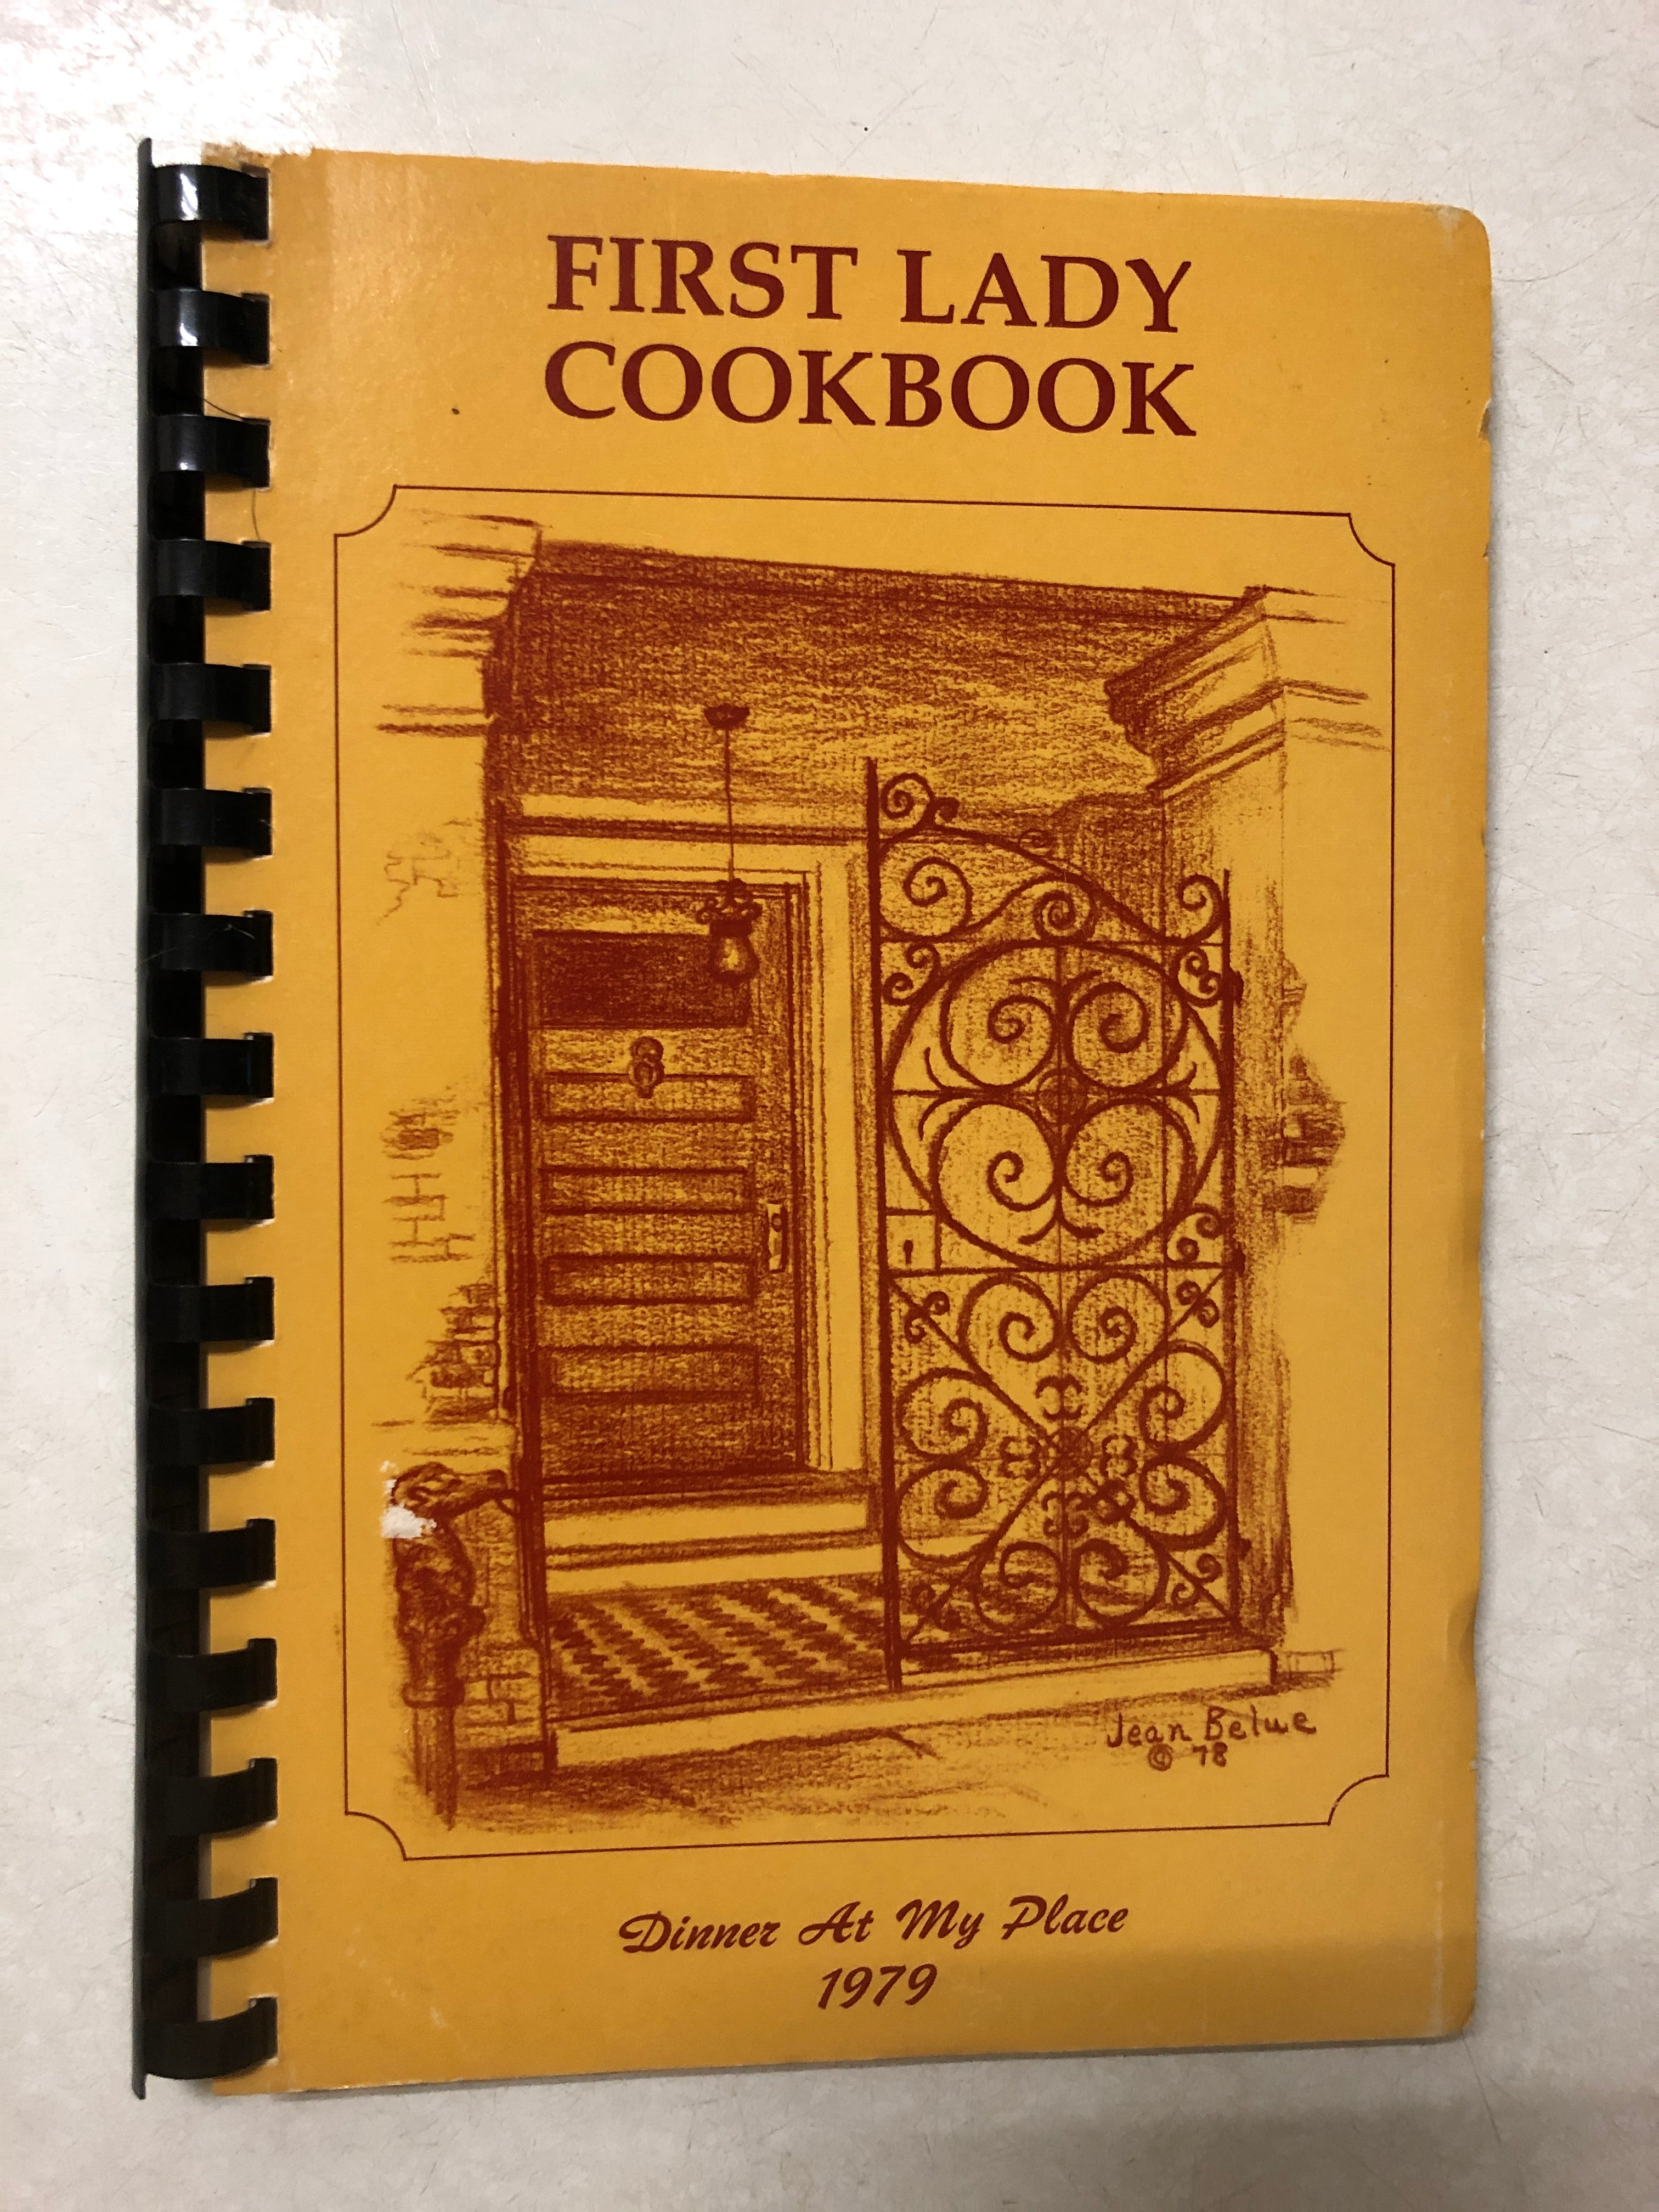 First Lady Cookbook Dinner At My Place 1979 - Slick Cat Books